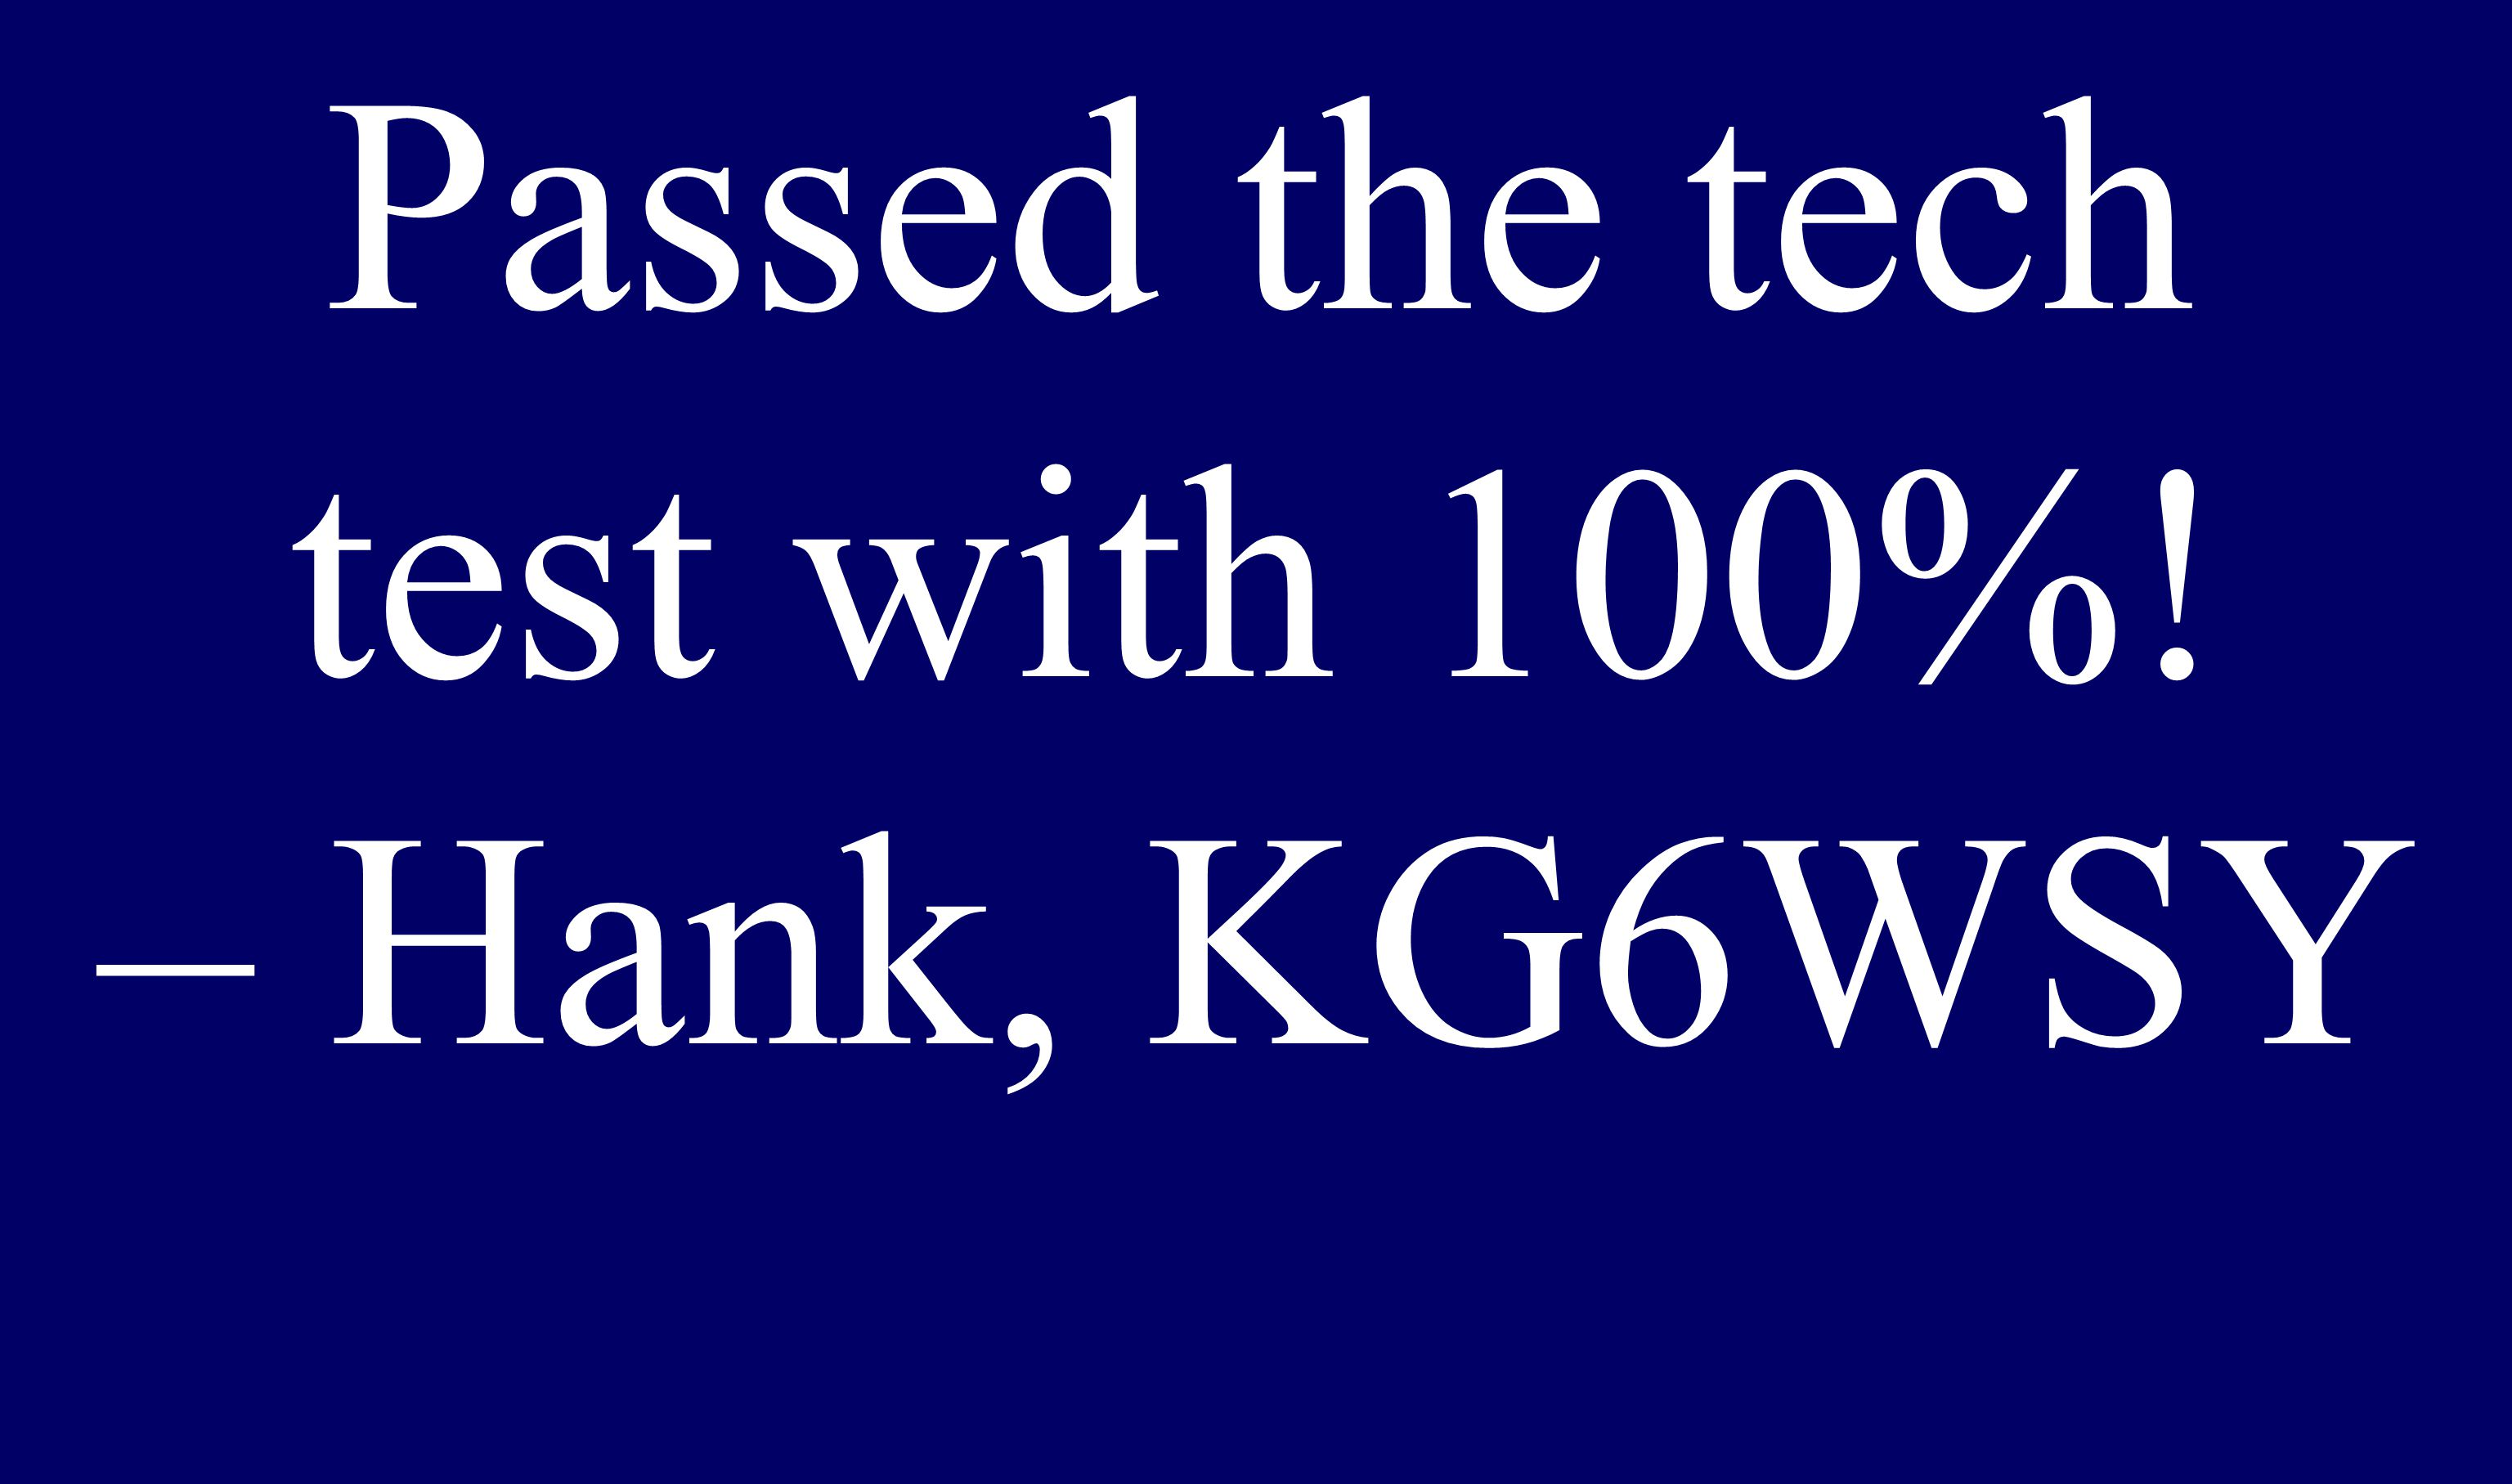 Passed the tech test with 100%! – Hank, KG6WSY